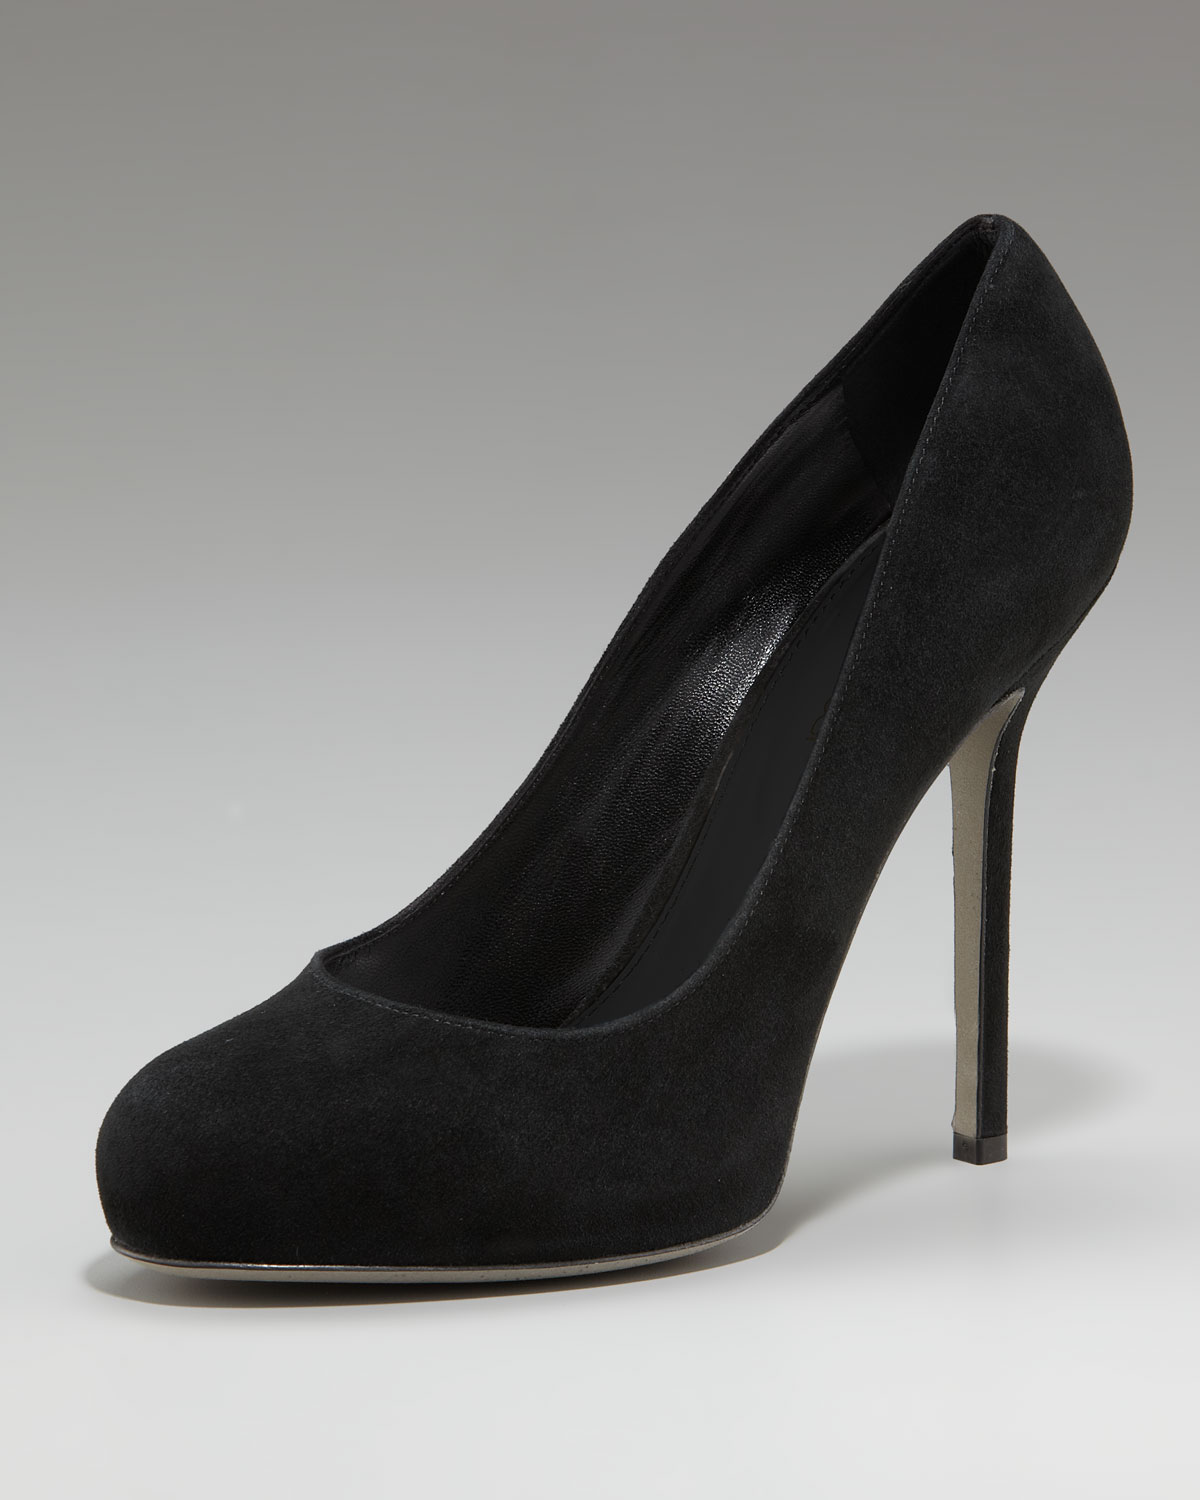 outlet Manchester cheap sale supply Sergio Rossi Rounded-Toe Suede Pumps cheap visit collections AMY3IN